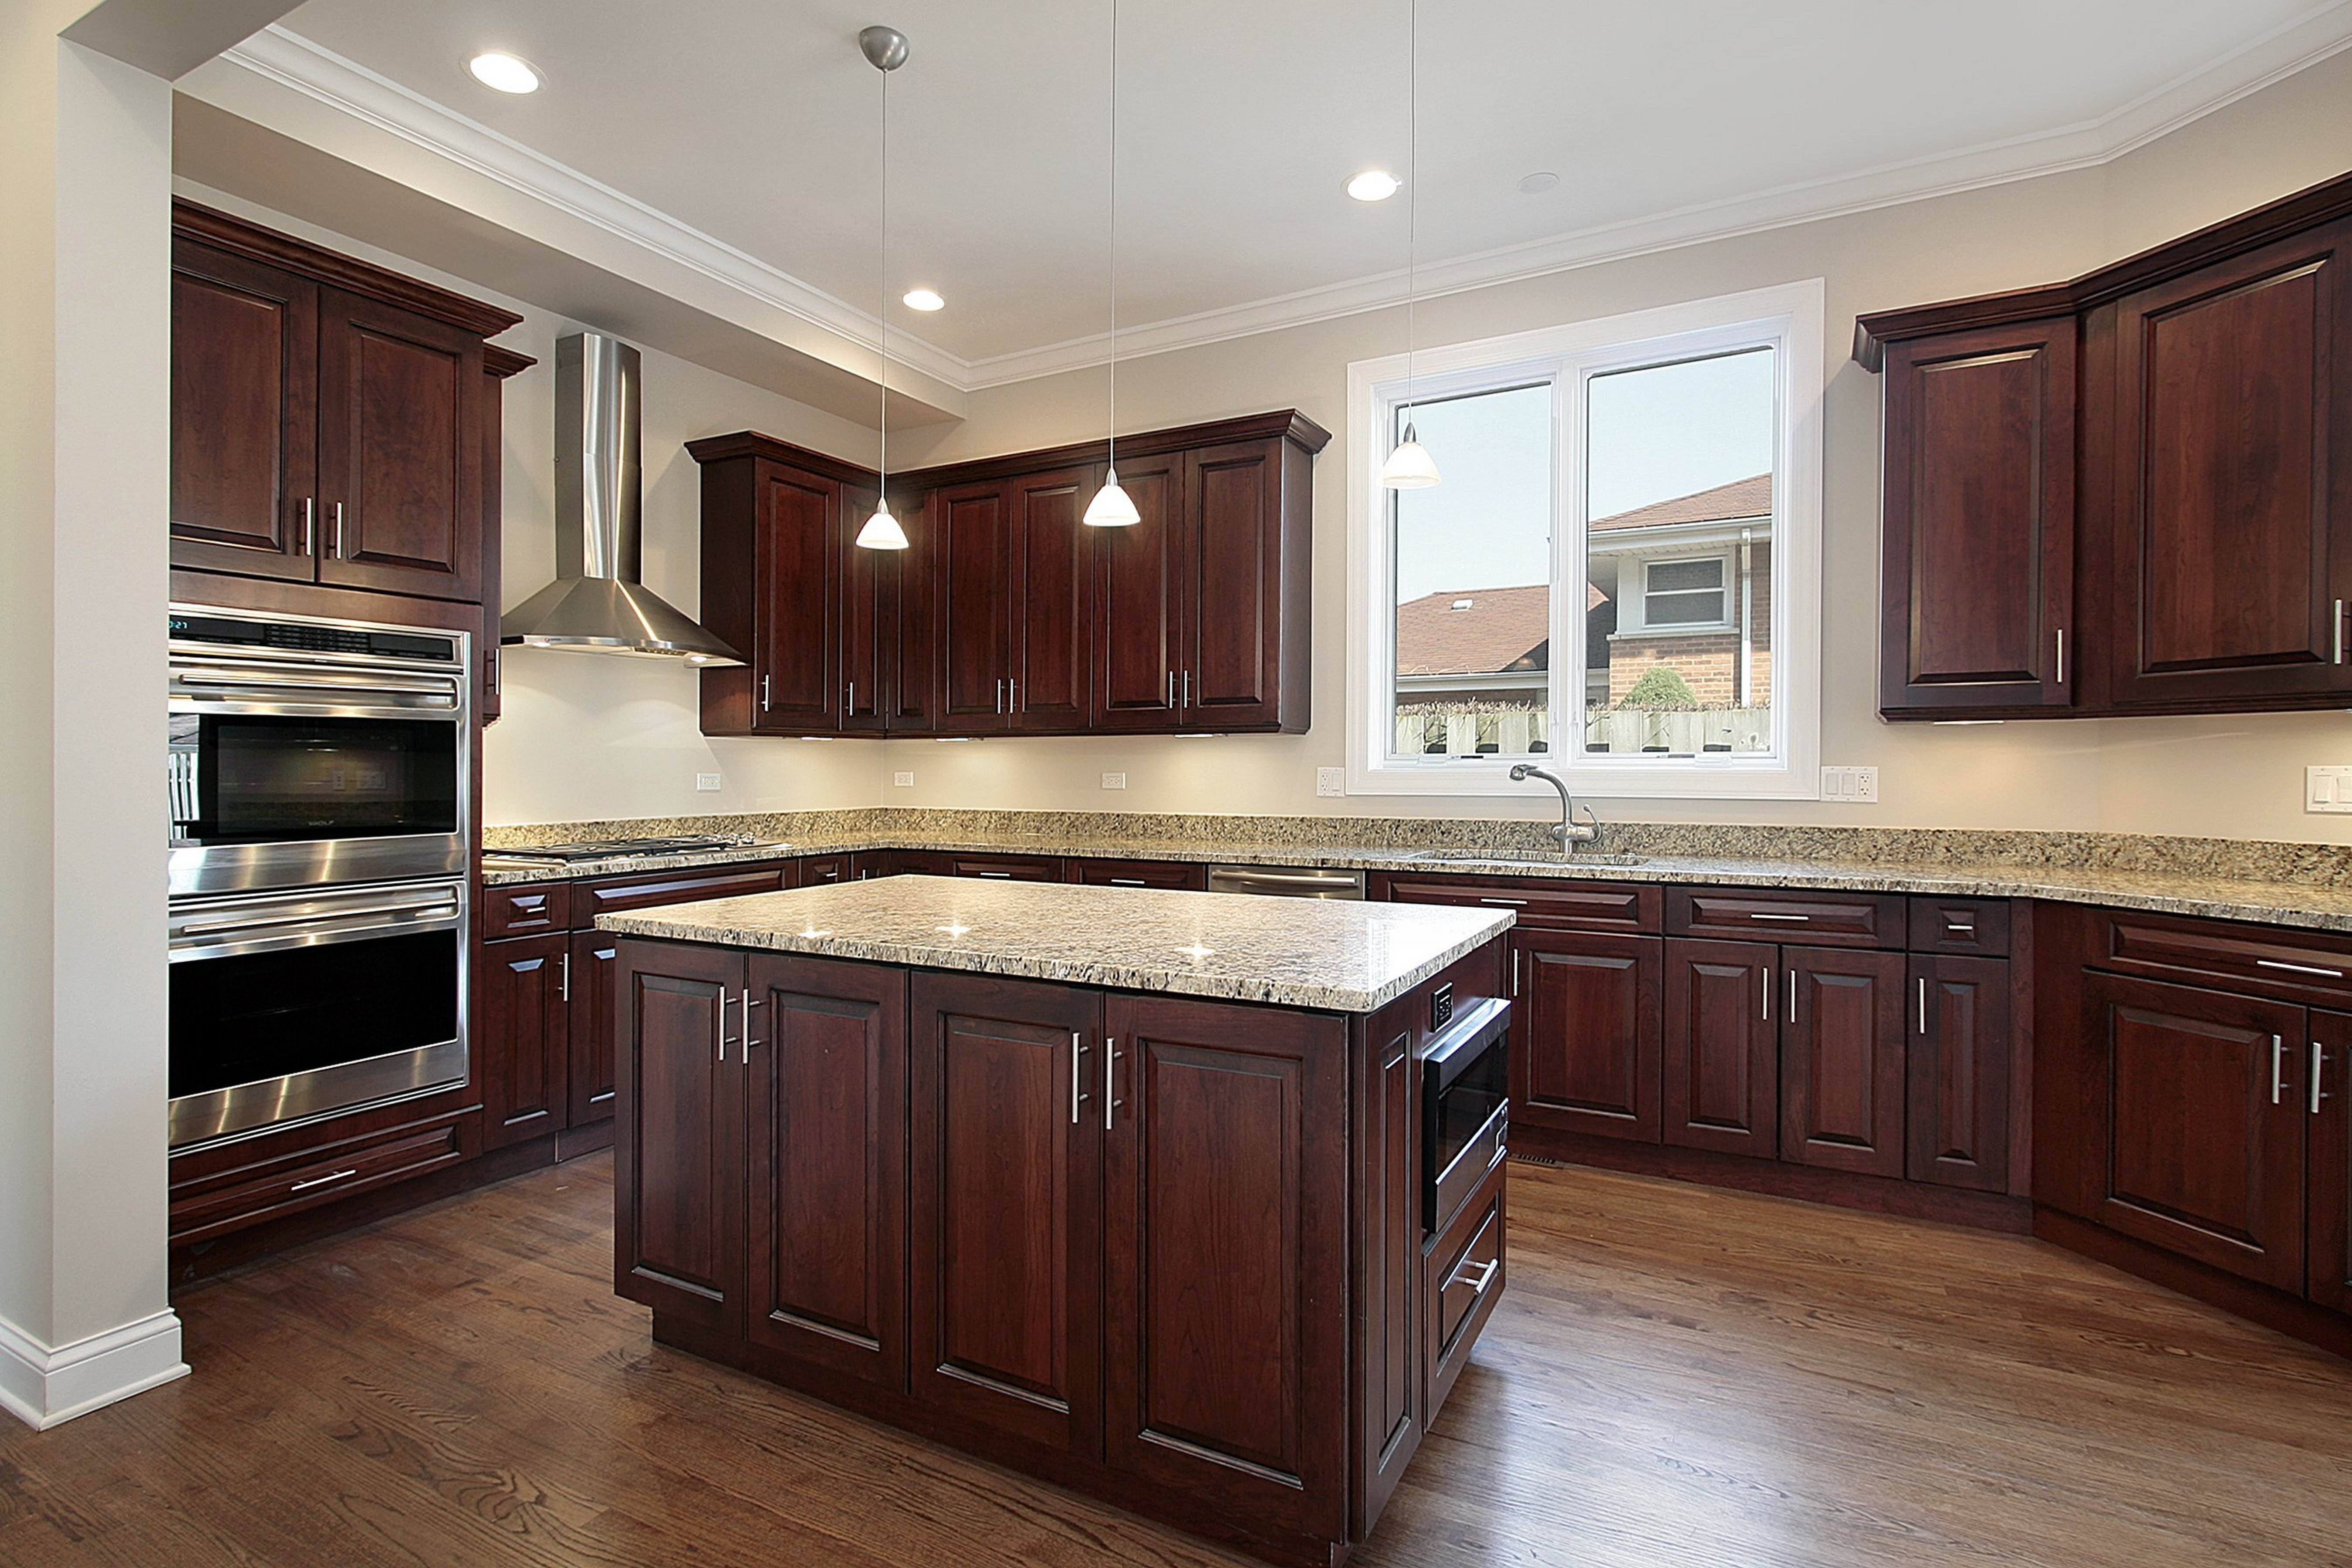 Kitchen Renovations Edmonton Do It All Contracting Ltd